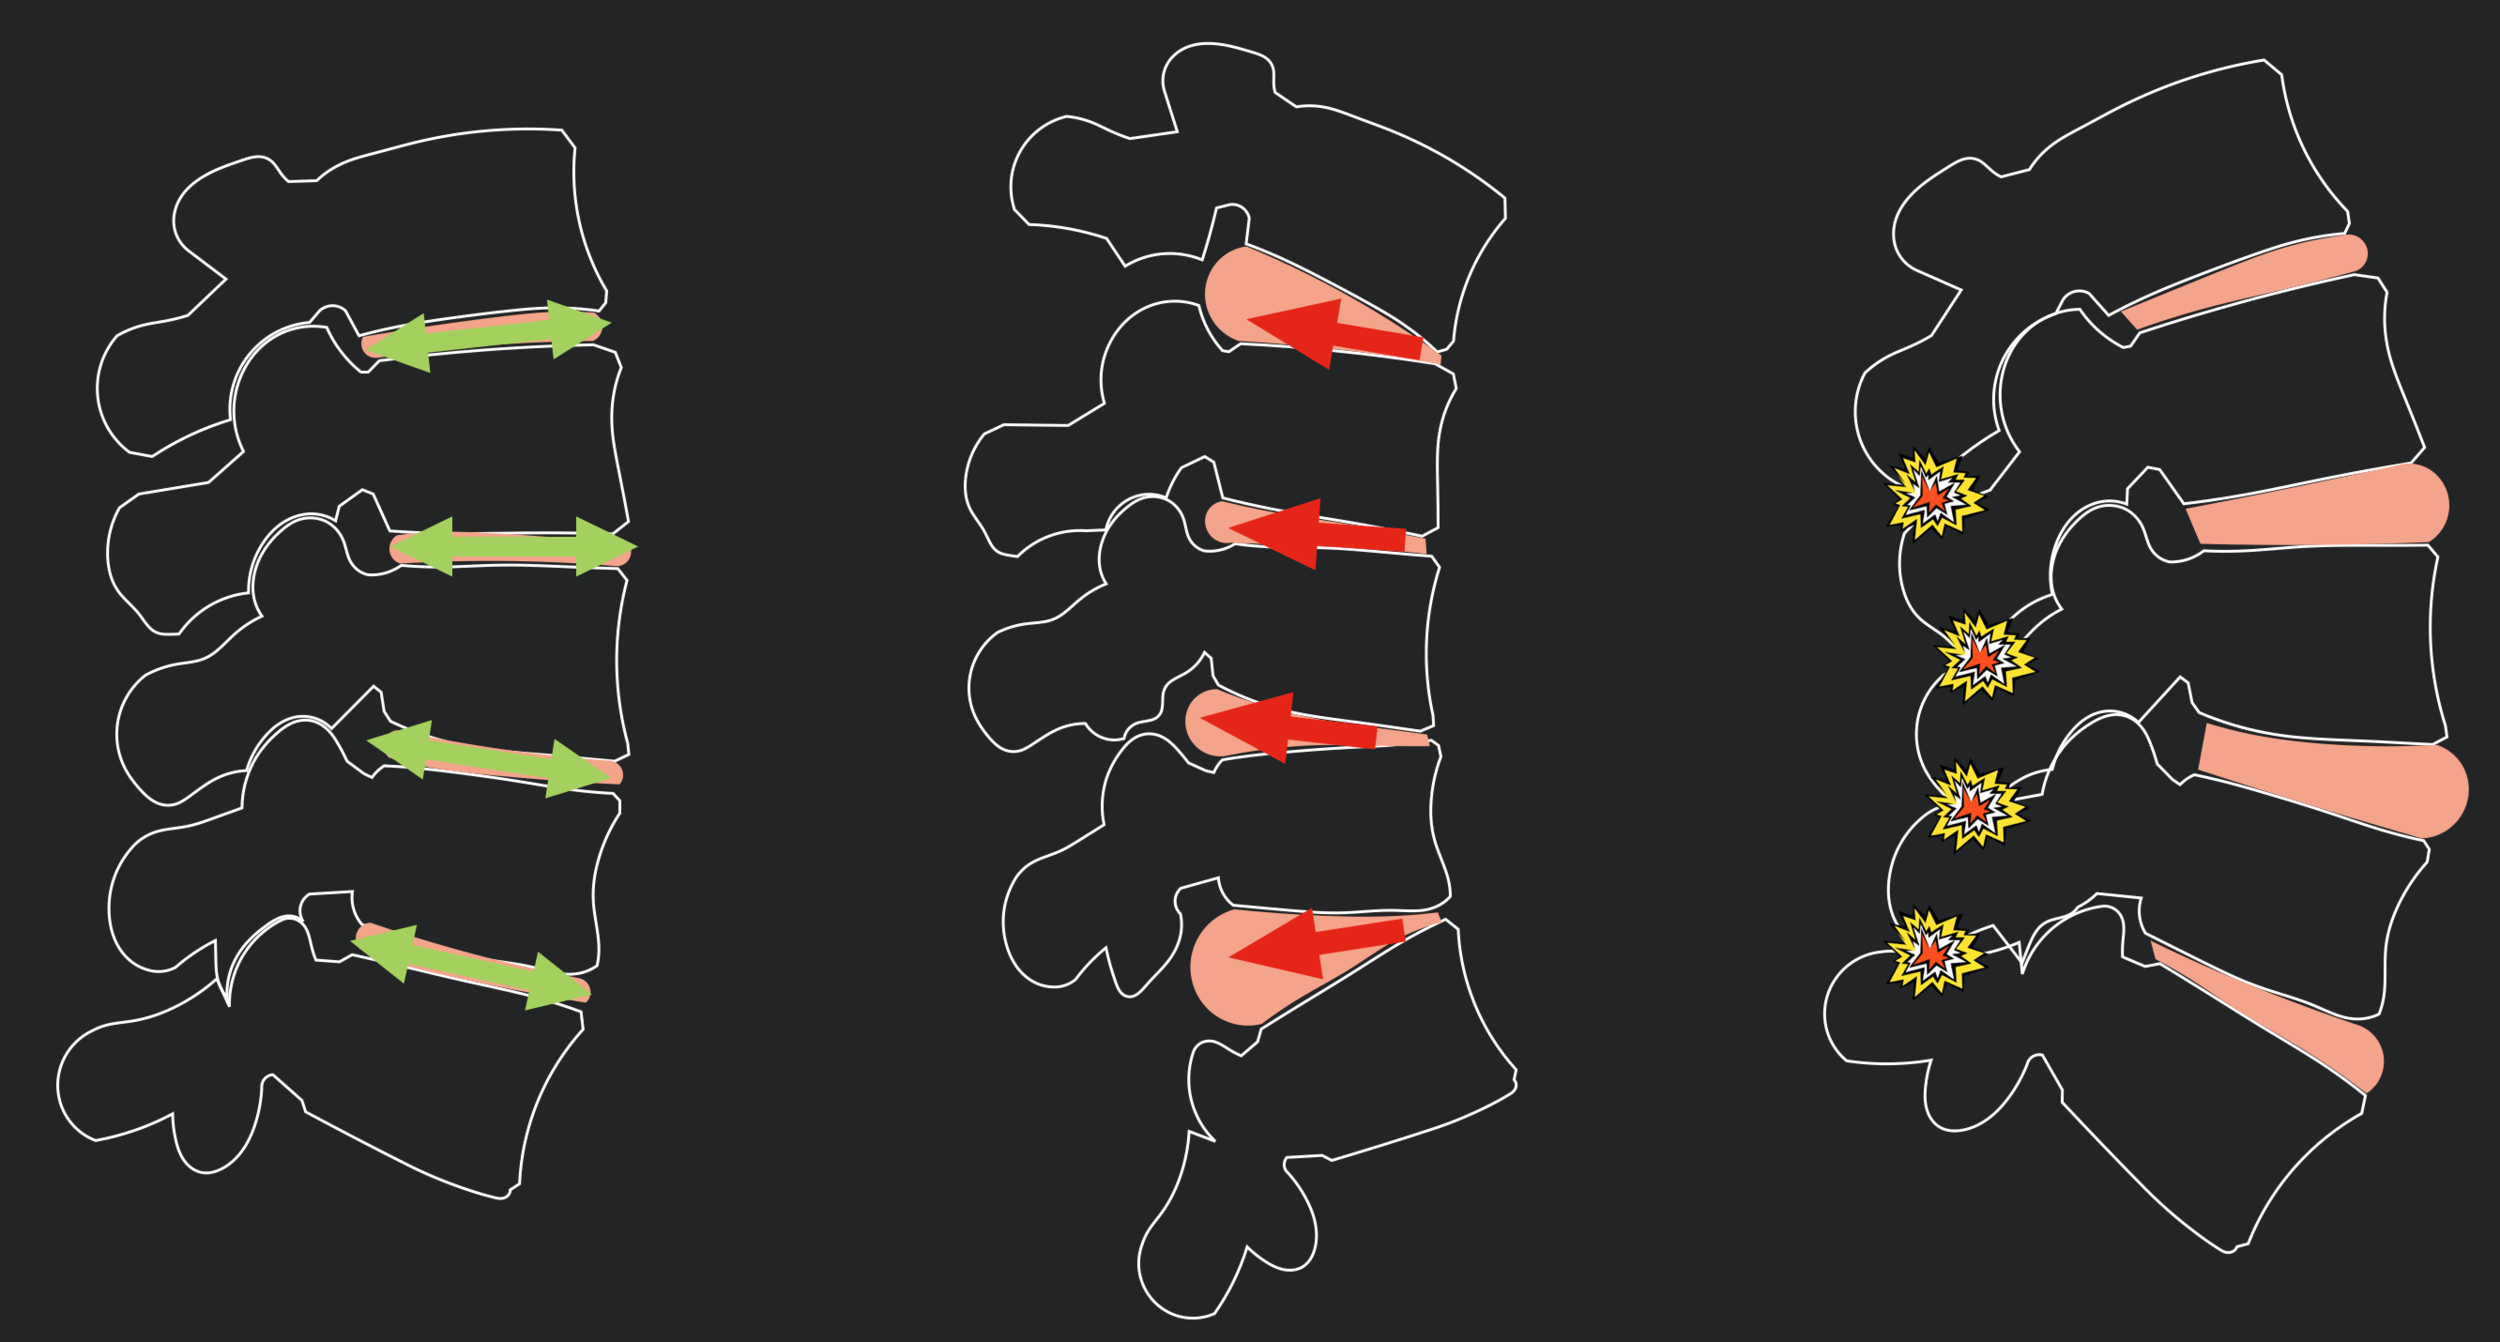 Biomechanics of the Spine - How Posture Influences our Structures